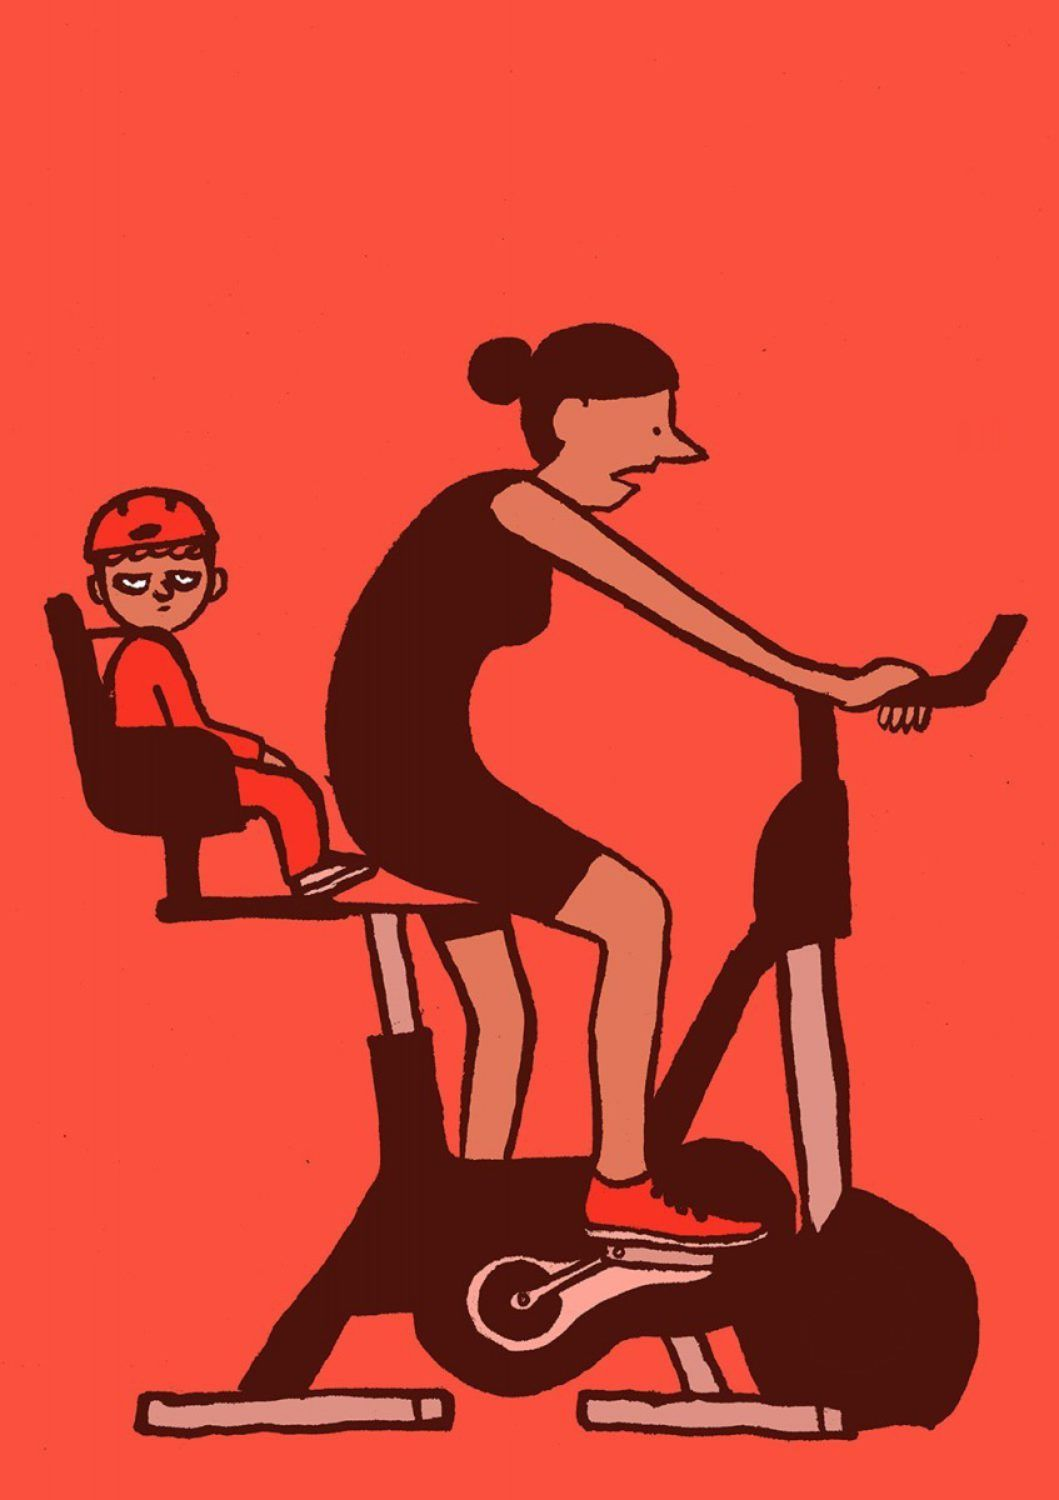 Jean Jullien Handsome Frank Illustration Agency In 2020 Jean Jullien Satirical Illustrations Illustration